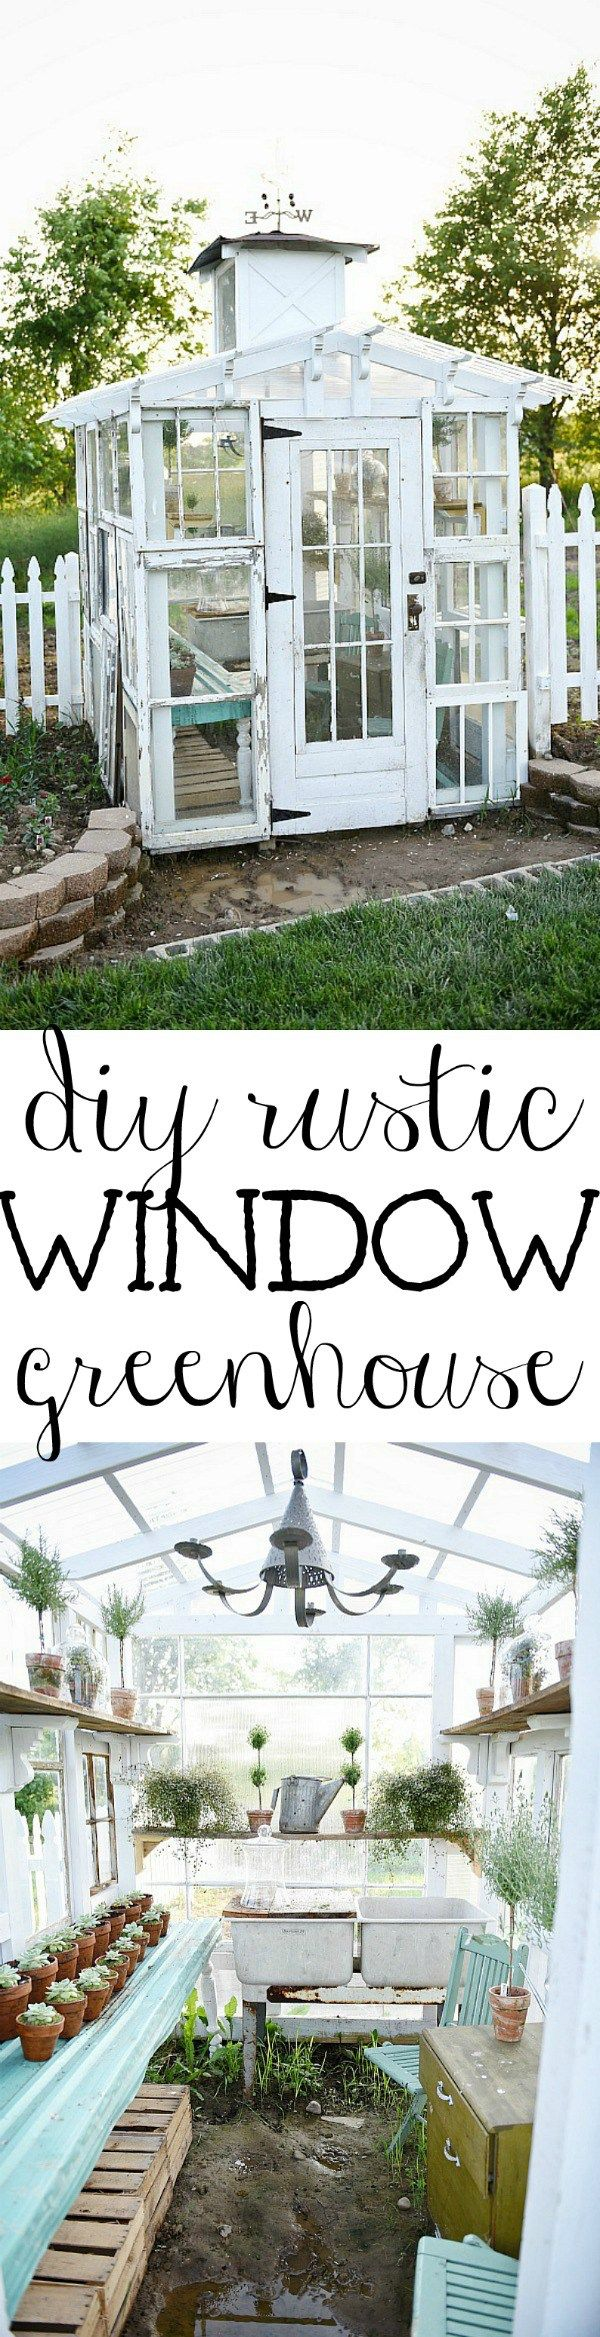 Rustic Window Greenhouse - awesome looking greenhouse made using salvaged windows - via Liz Marie Blog